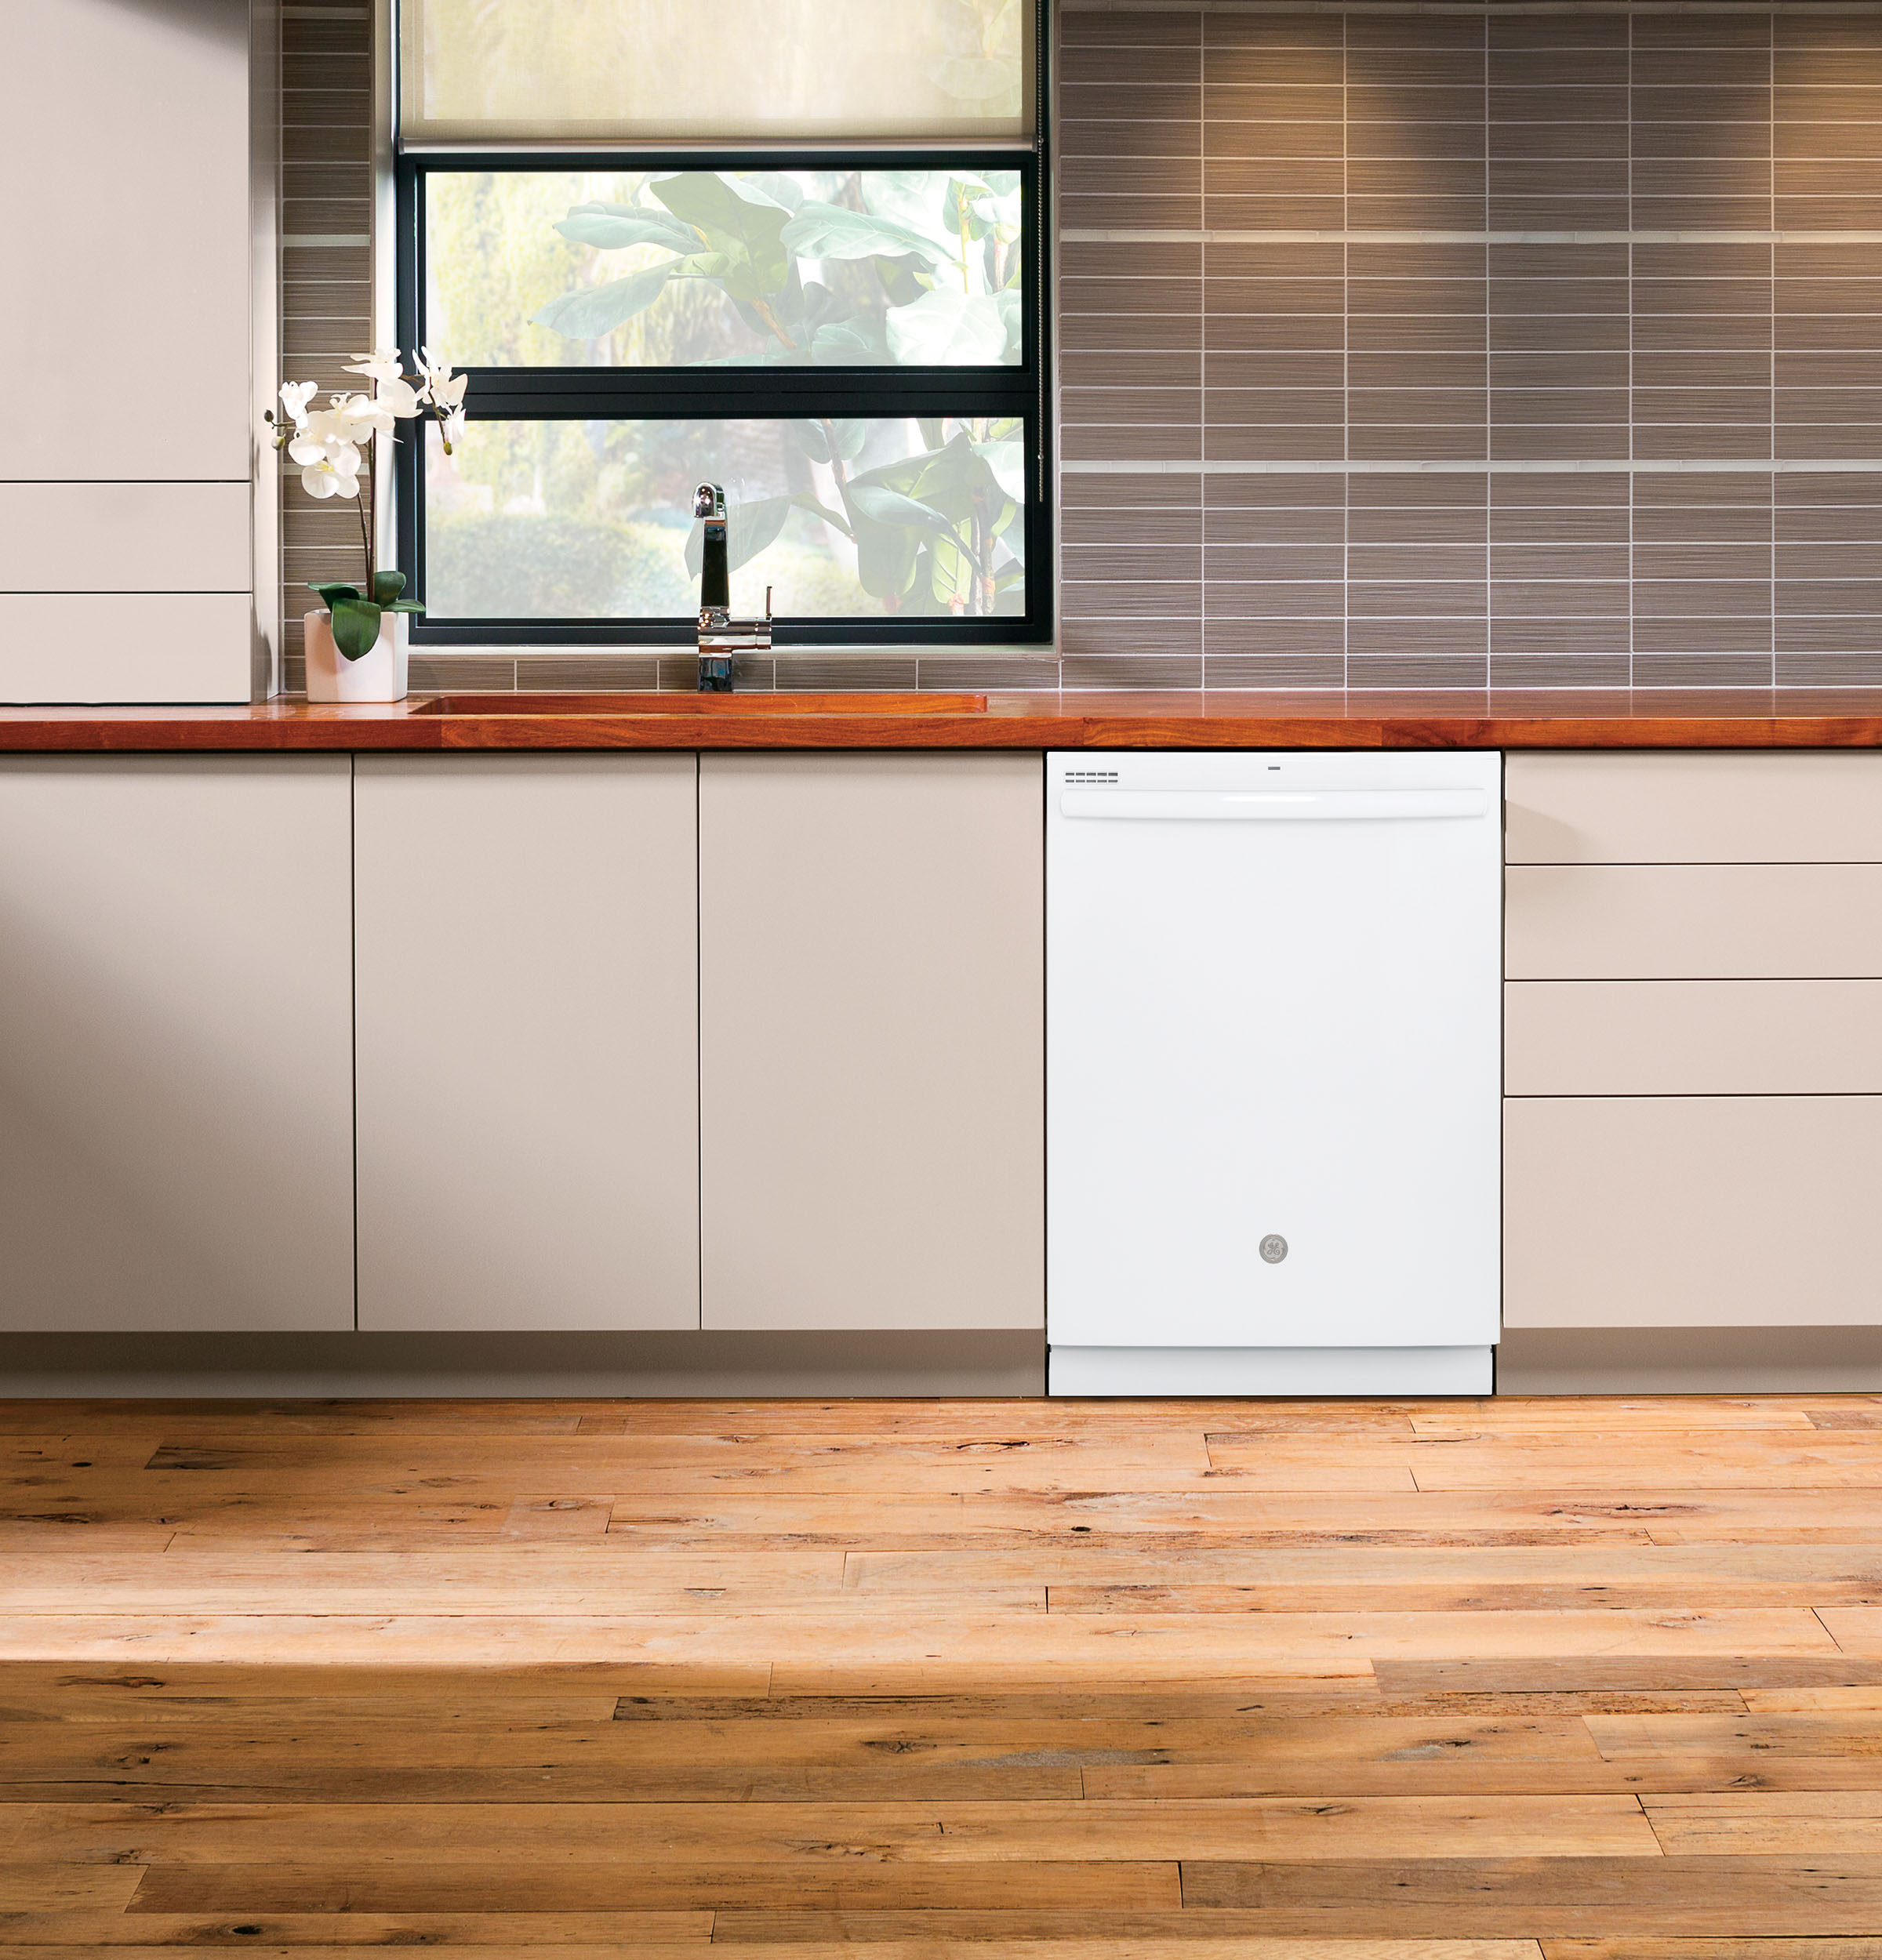 Model: GDT530PGPWW | GE GE® Top Control with Plastic Interior Dishwasher with Sanitize Cycle & Dry Boost